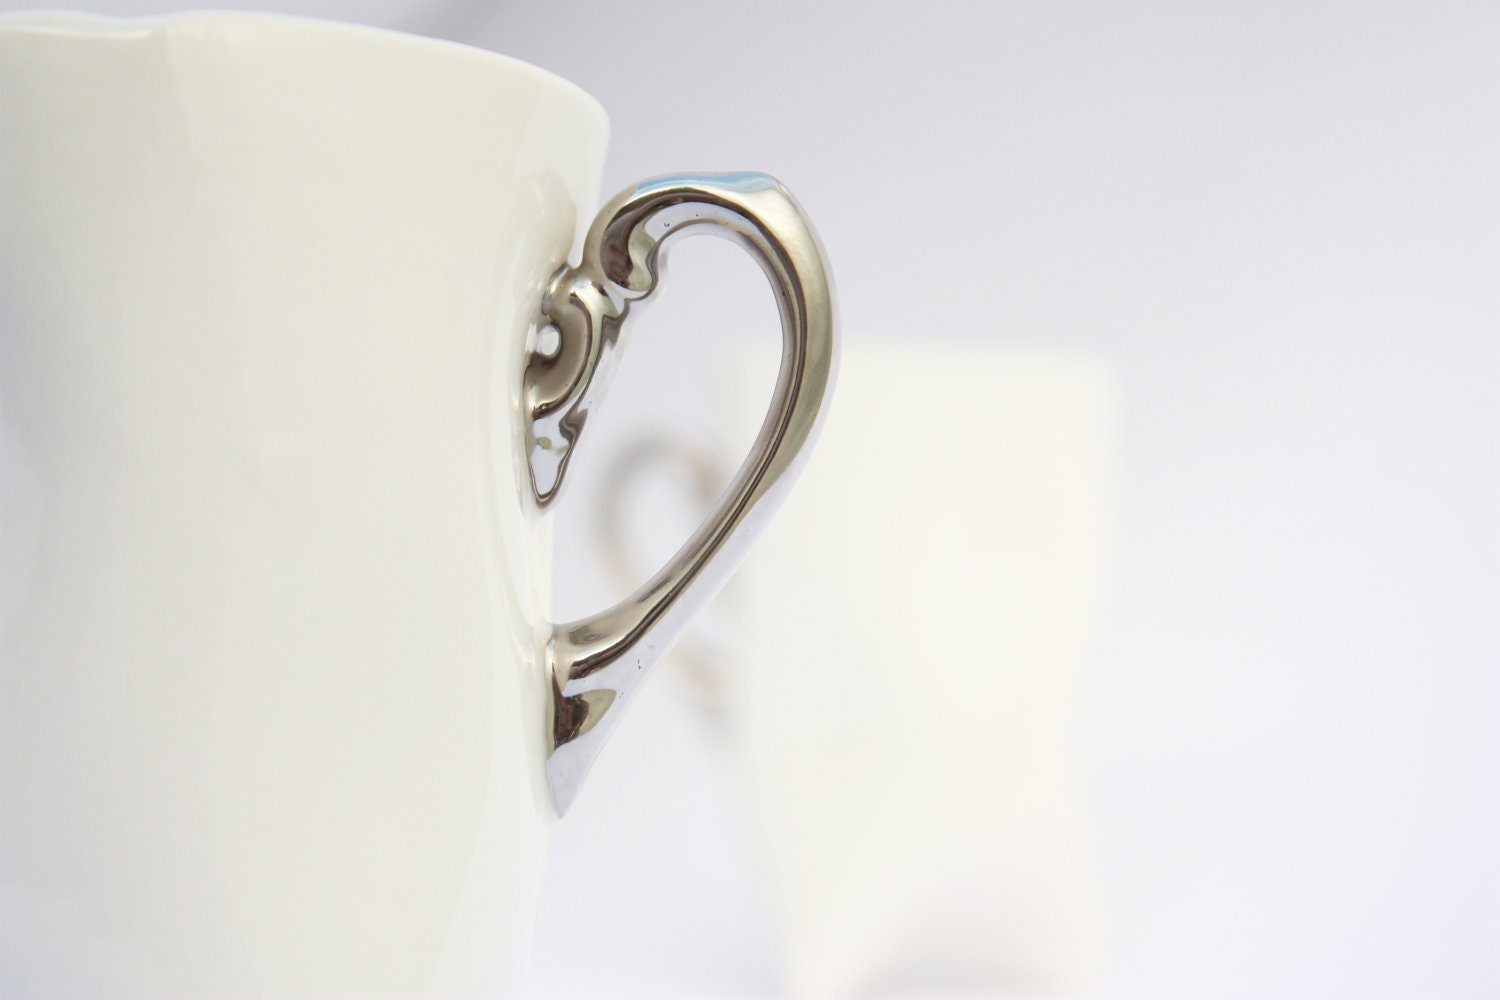 Ceramic porcelain mug - white with silver, unique cup handmade for coffee or tea by Endesign